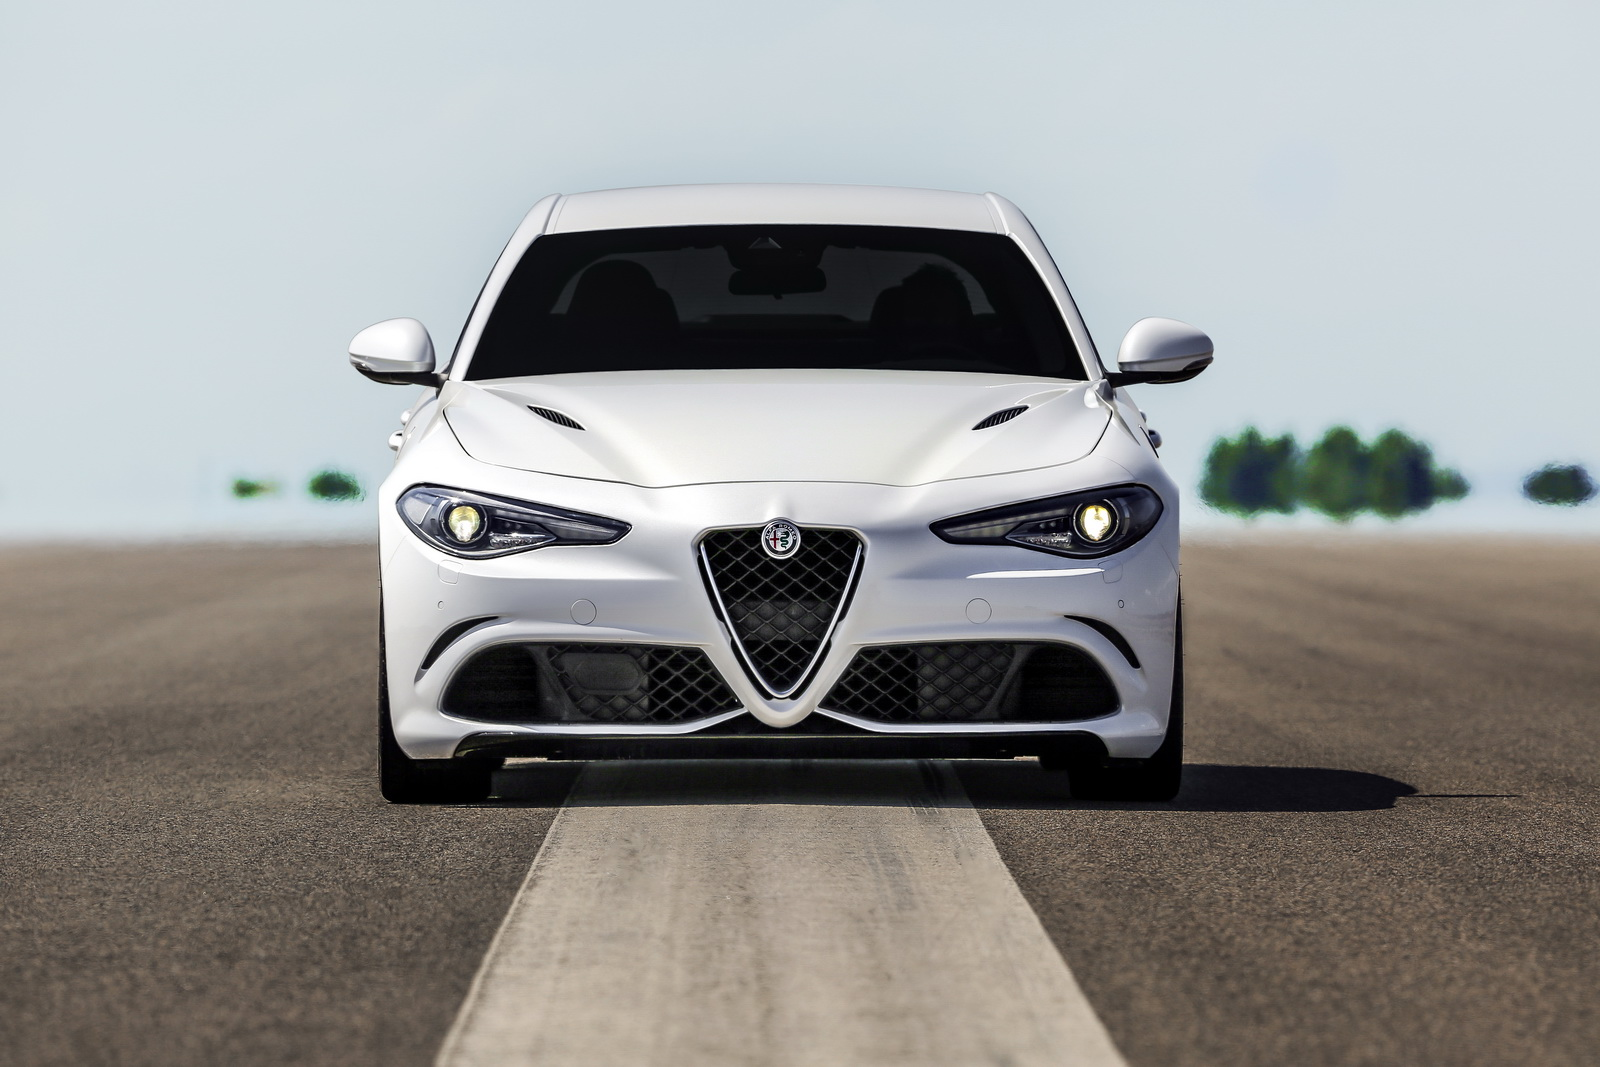 Alfa Romeo Giulia Launching In The Uk September 2016 Supercar